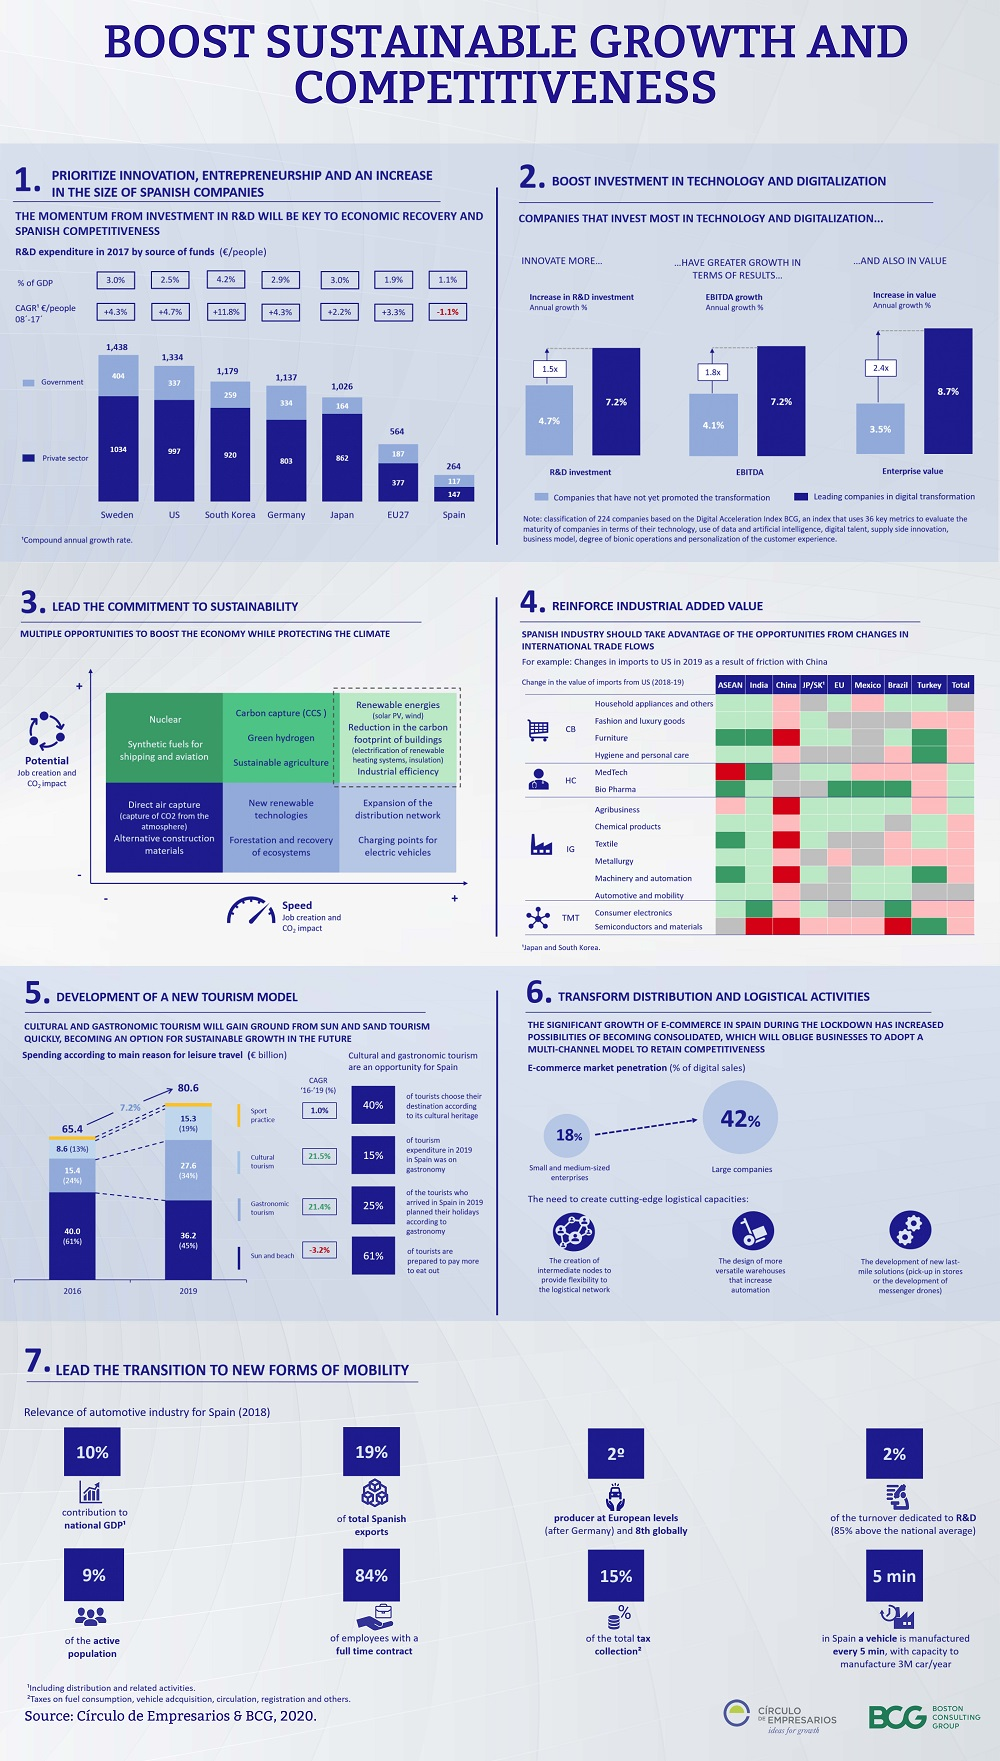 BOOST-SUSTAINABLE-GROWTH-AND-COMPETITIVENESS-infographic-July-2020-Circulo-de-Empresarios